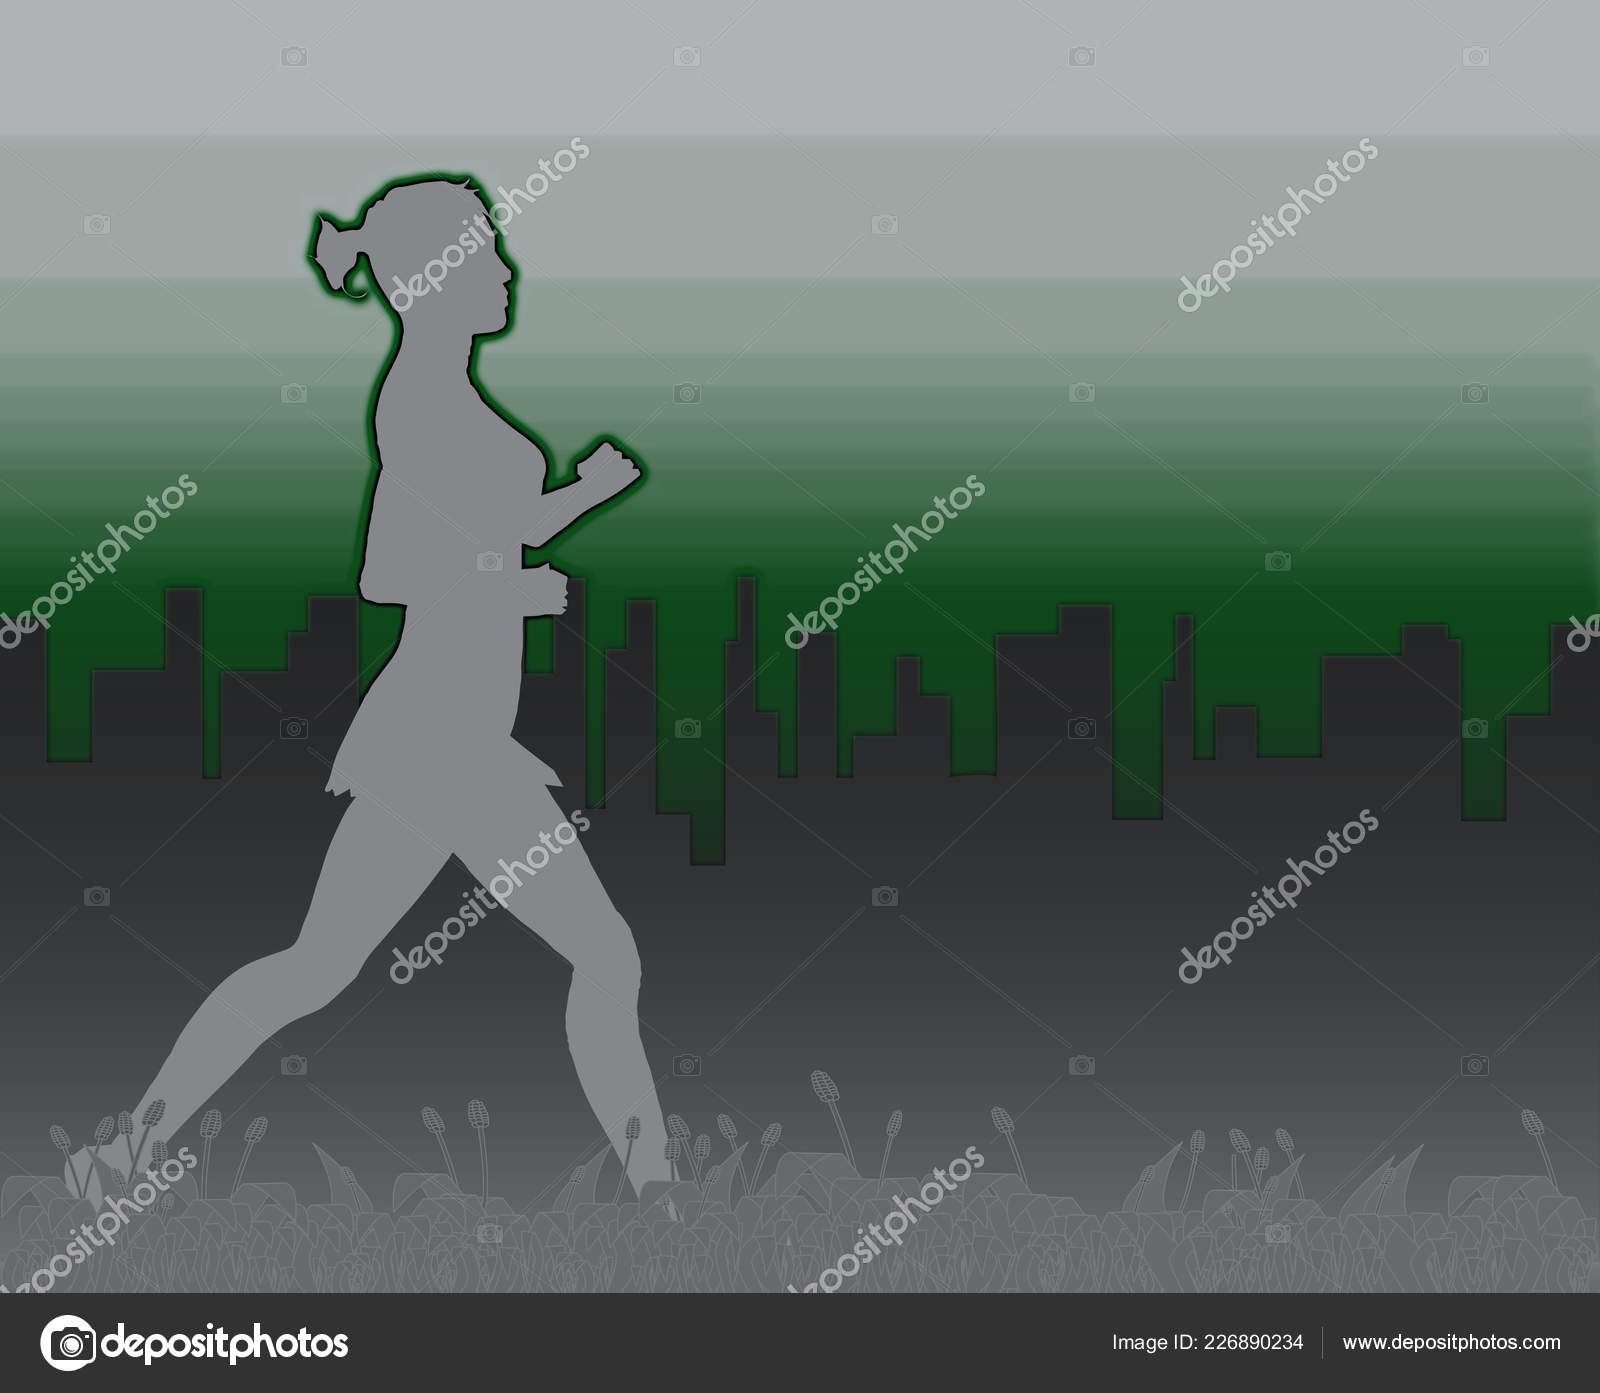 Grass Footer Overlooked Misty Morning Cityscape Jogger Stock Photo